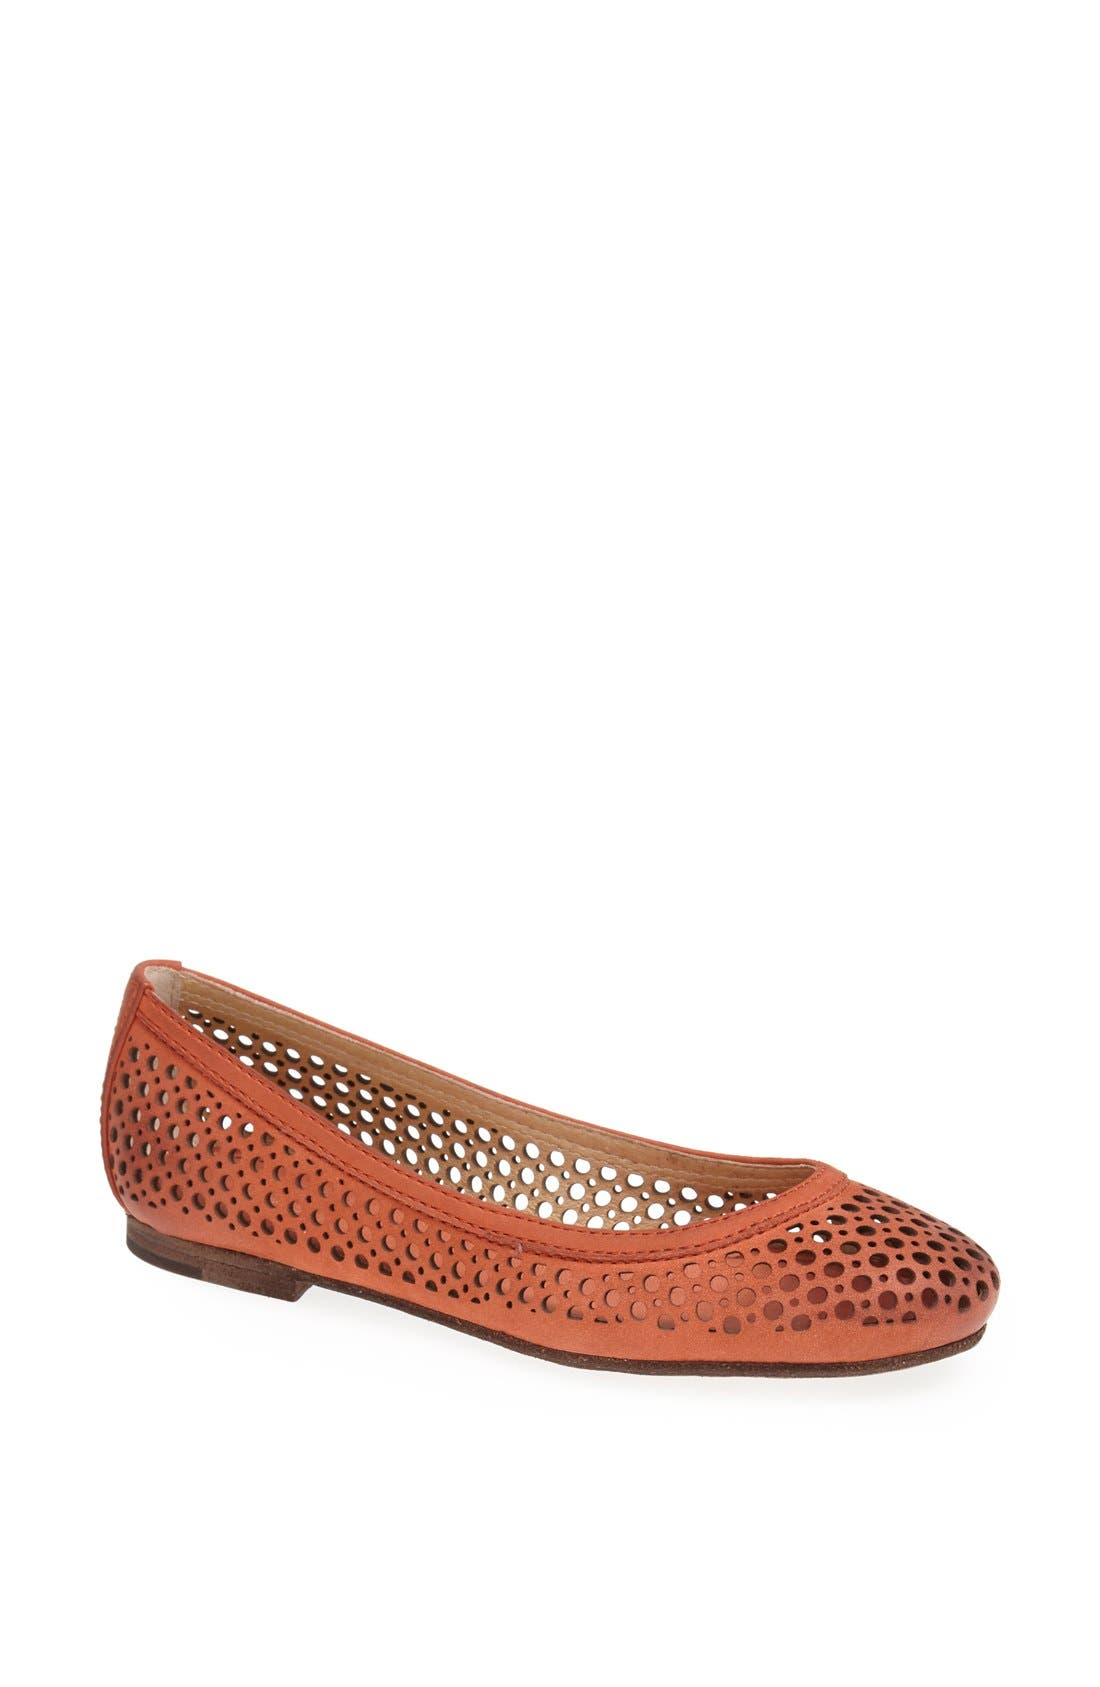 Alternate Image 1 Selected - Frye 'Carson' Perforated Leather Ballet Flat